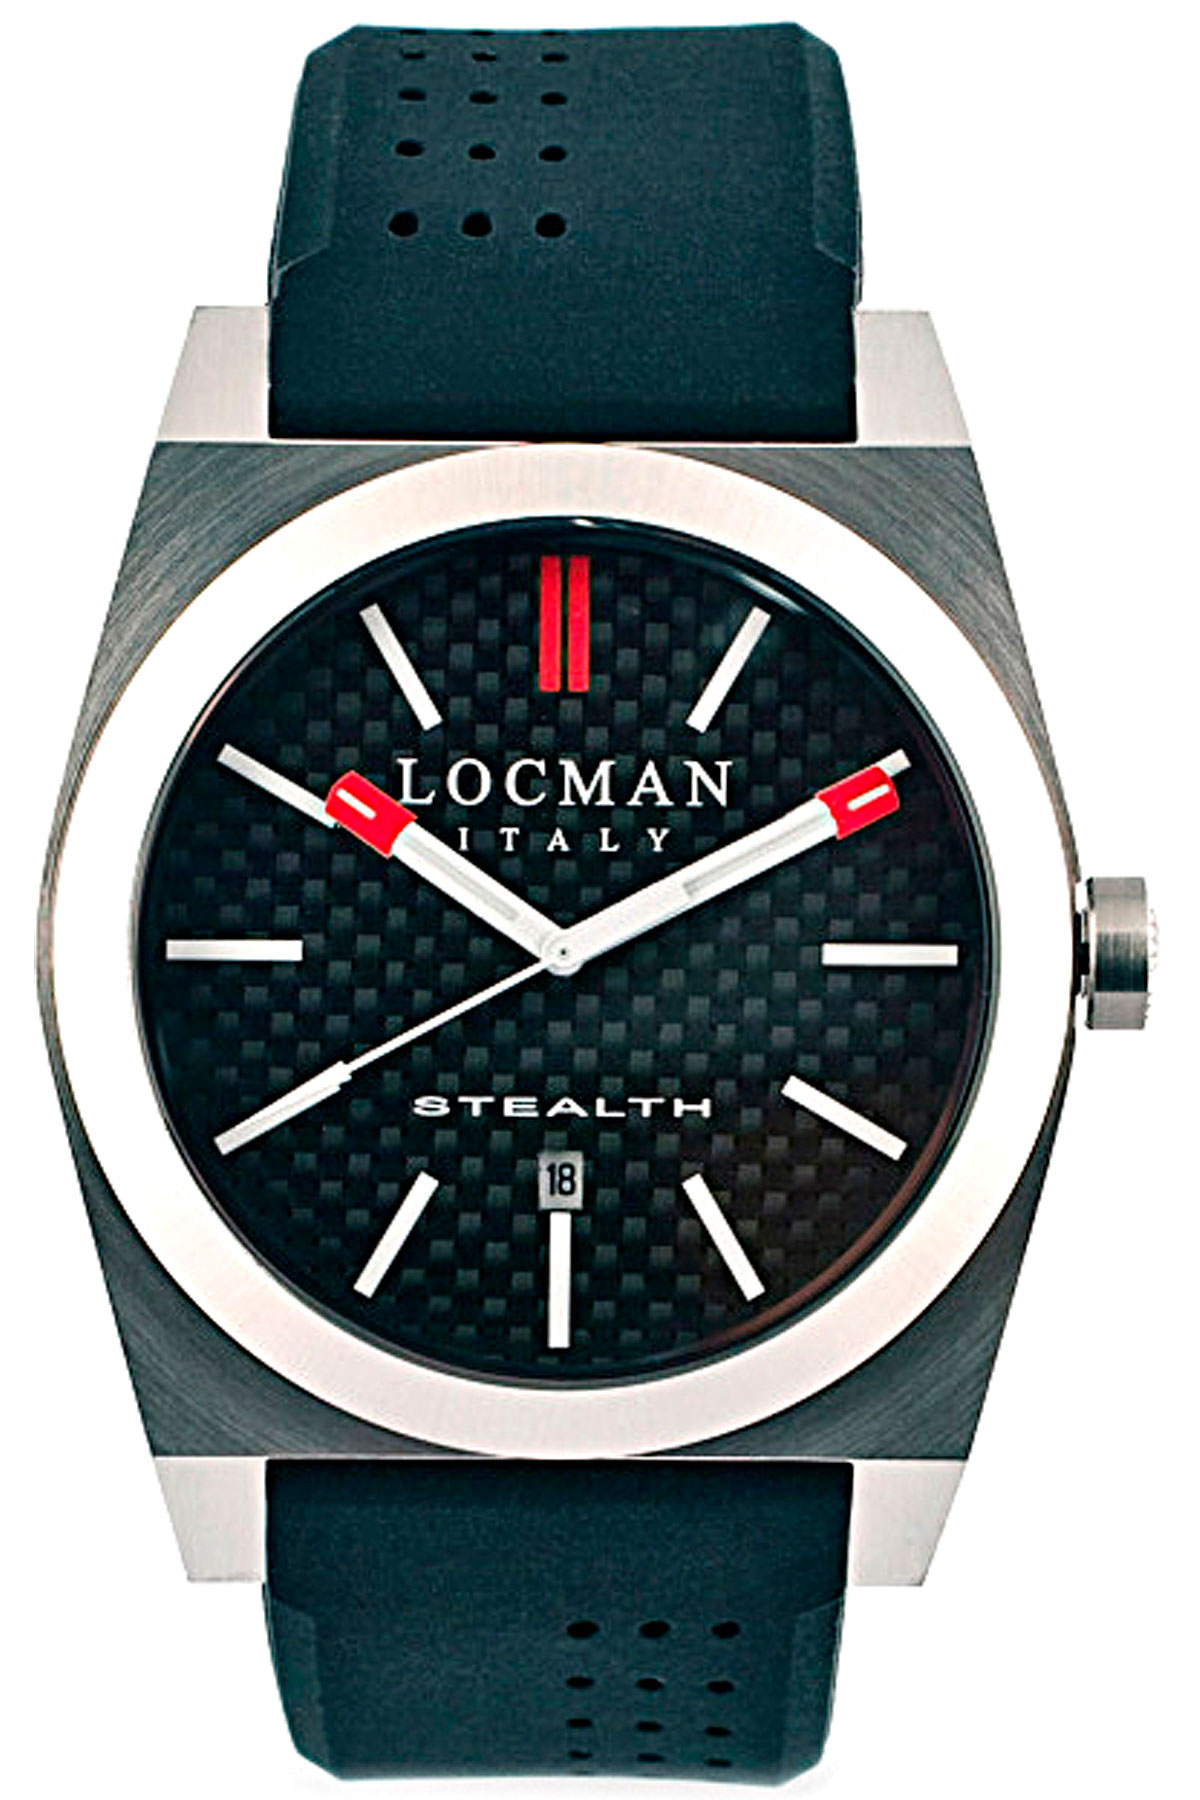 Locman Watch for Men, Black, Carbon Fiber, 2019